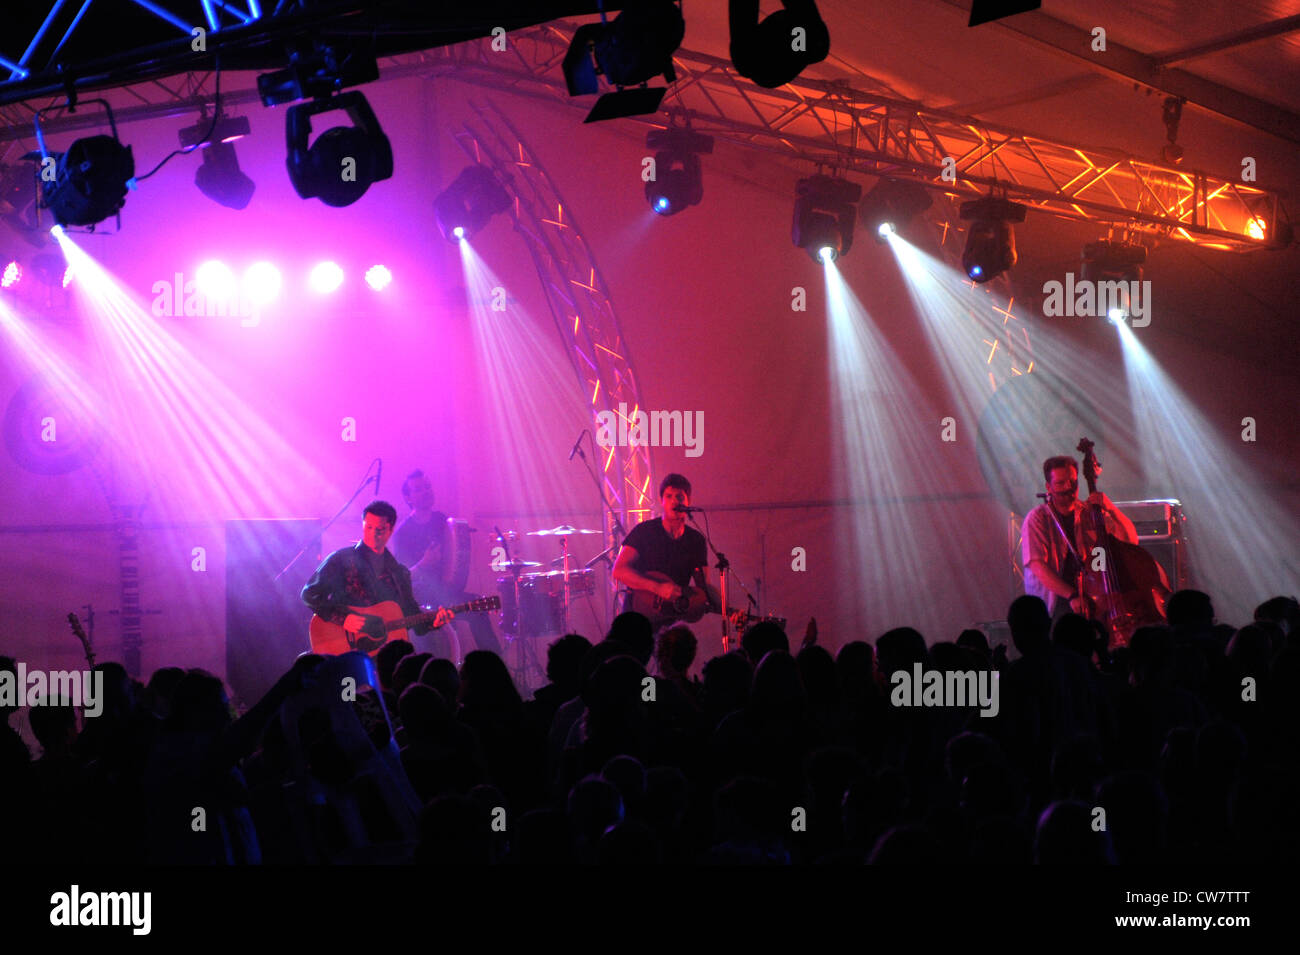 Seth Lakeman on stage at the Fairbridge Festival of World and Folk Music in Western Australia - Stock Image